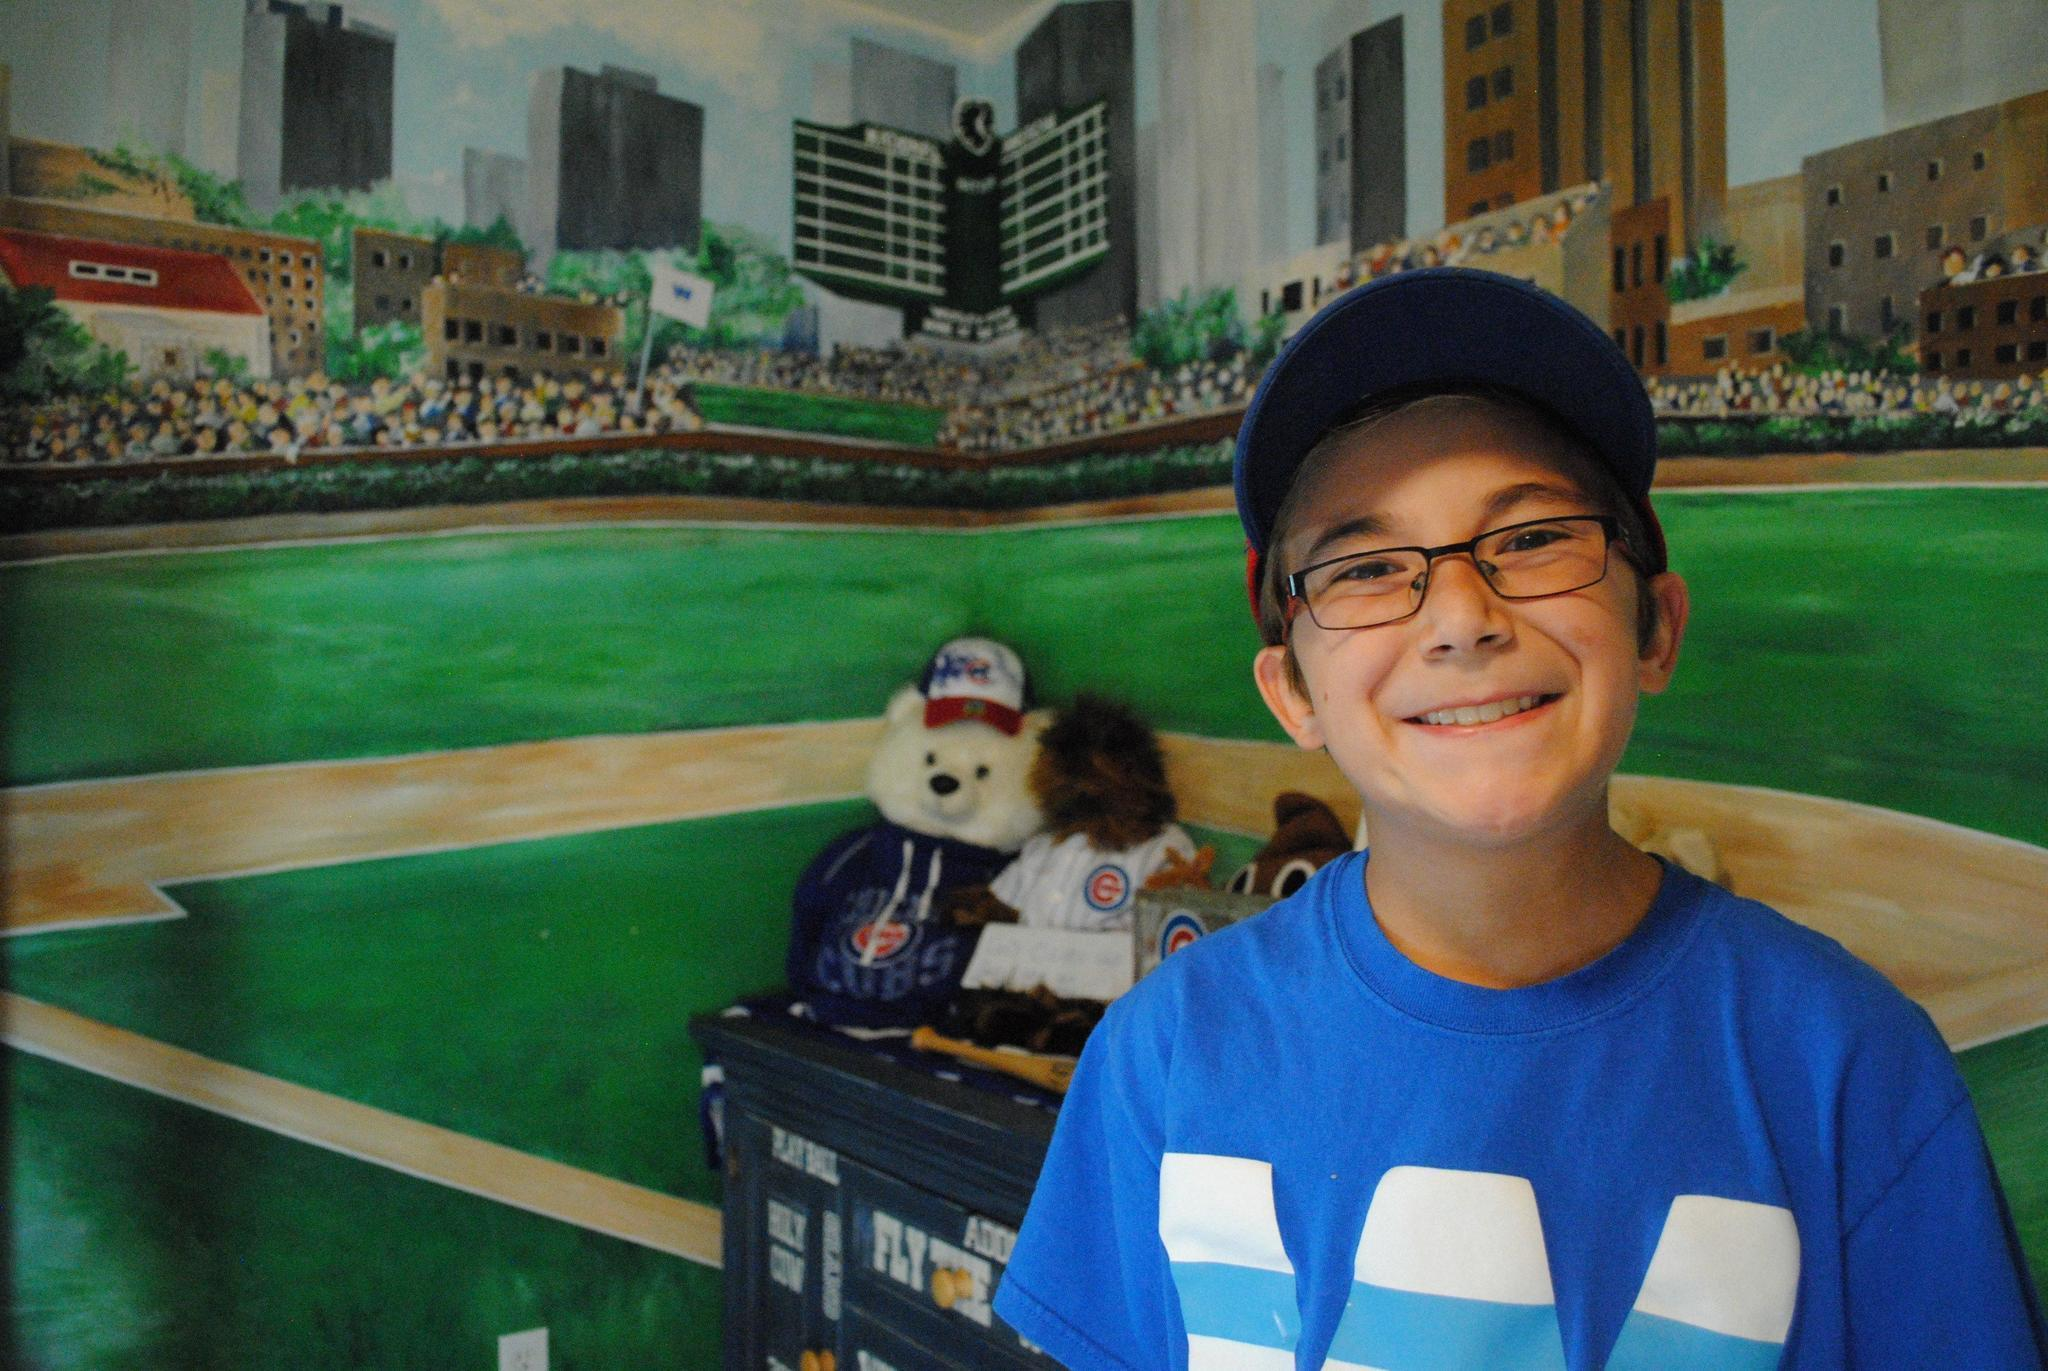 Young fan roots on cubs with wrigley field bedroom mural post young fan roots on cubs with wrigley field bedroom mural post tribune amipublicfo Gallery